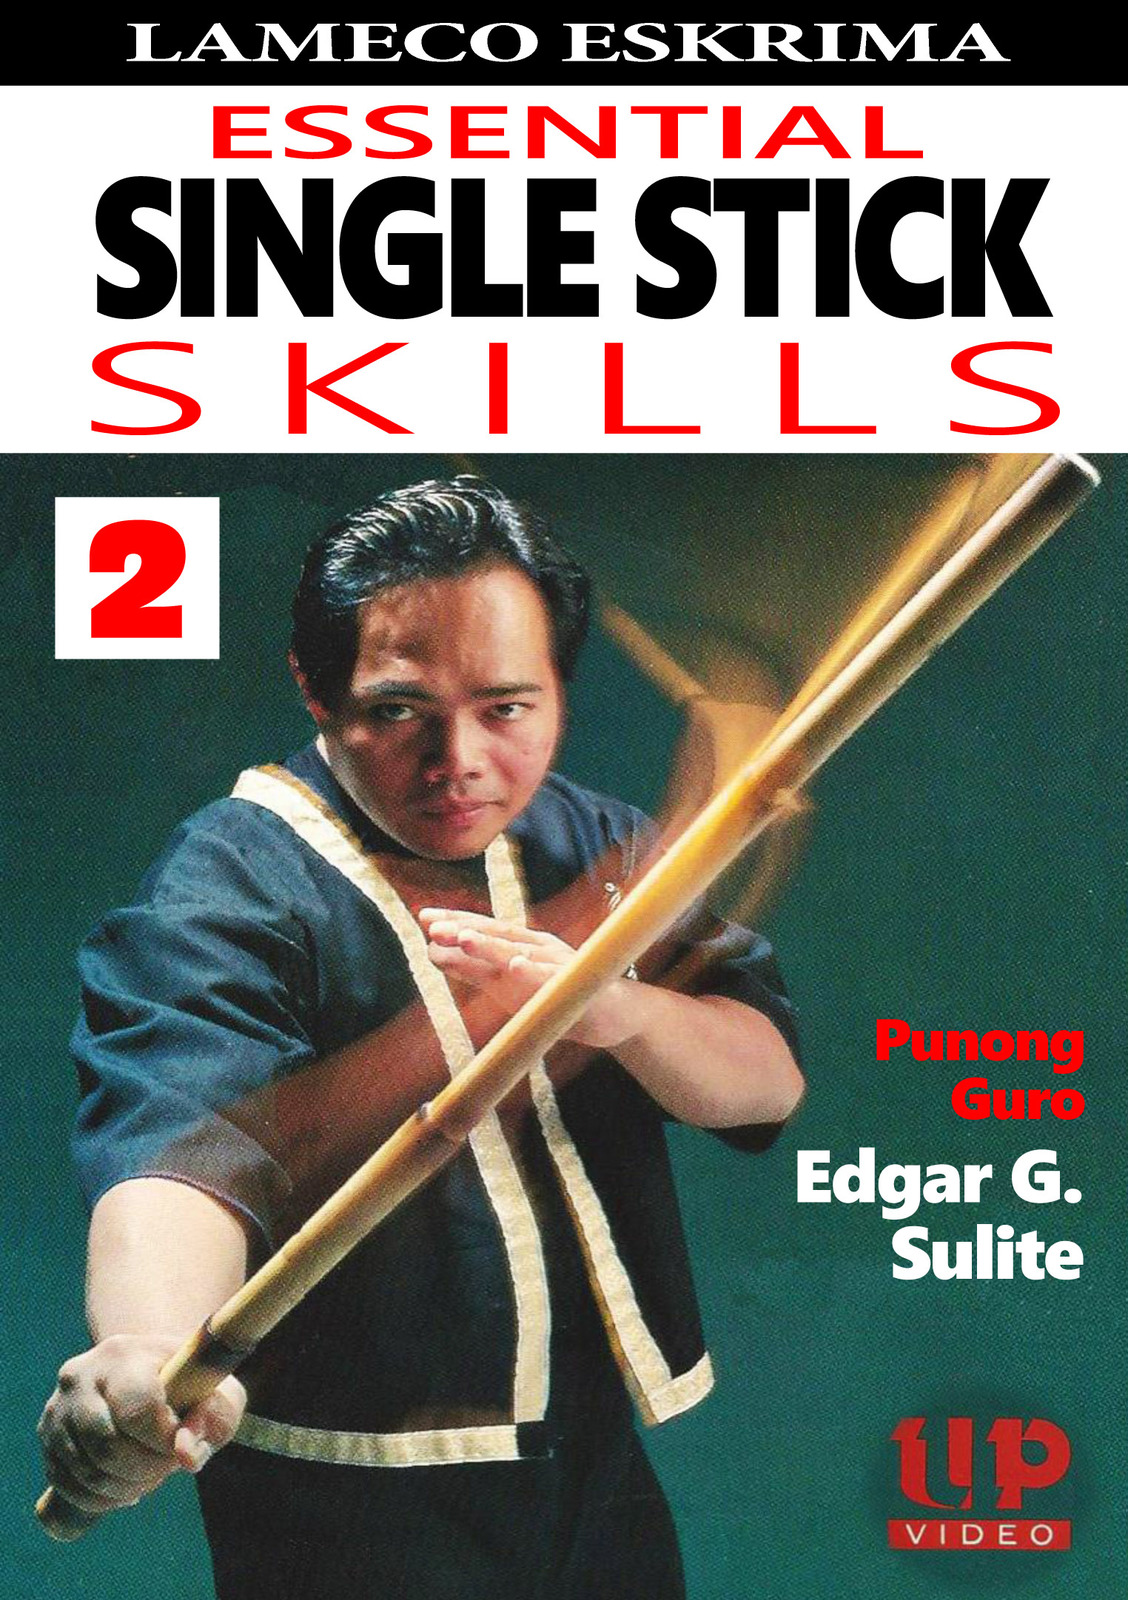 Lameco Eskrima Essential Single Stick Skills #2 Martial Arts DVD Edgar Sulite